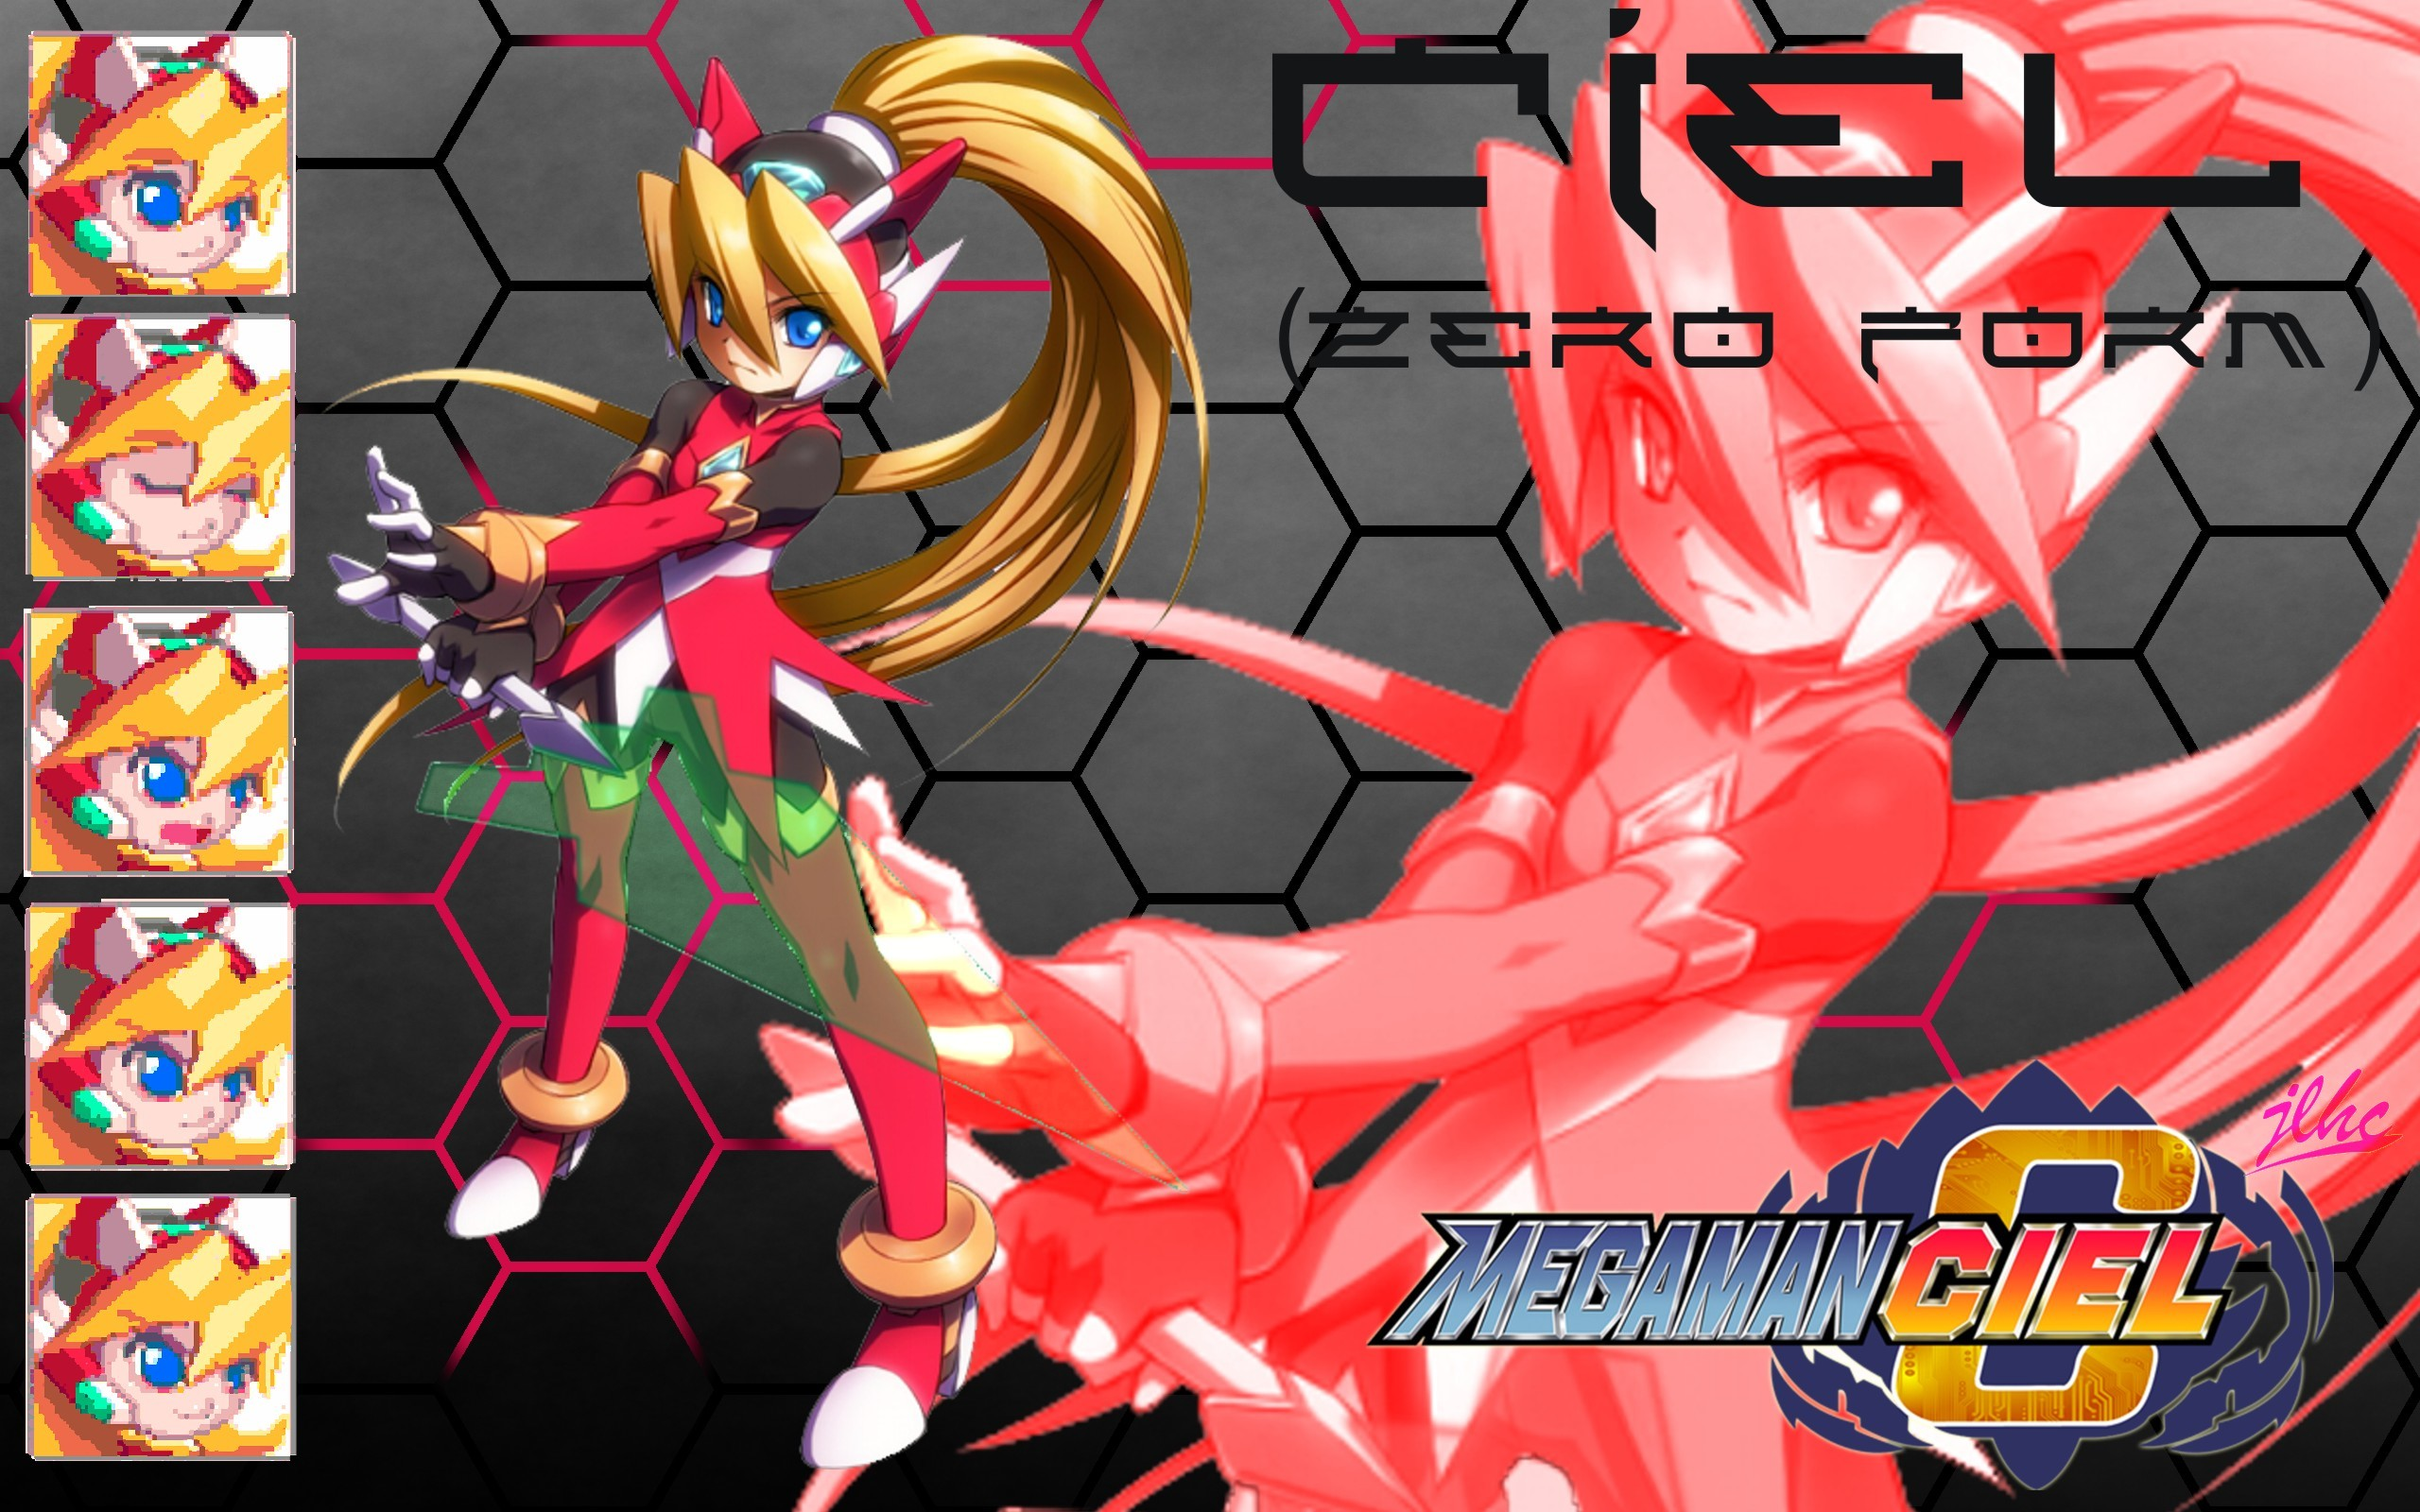 Megaman Zero Wallpapers High Quality Resolution with HD Wallpaper Resolution